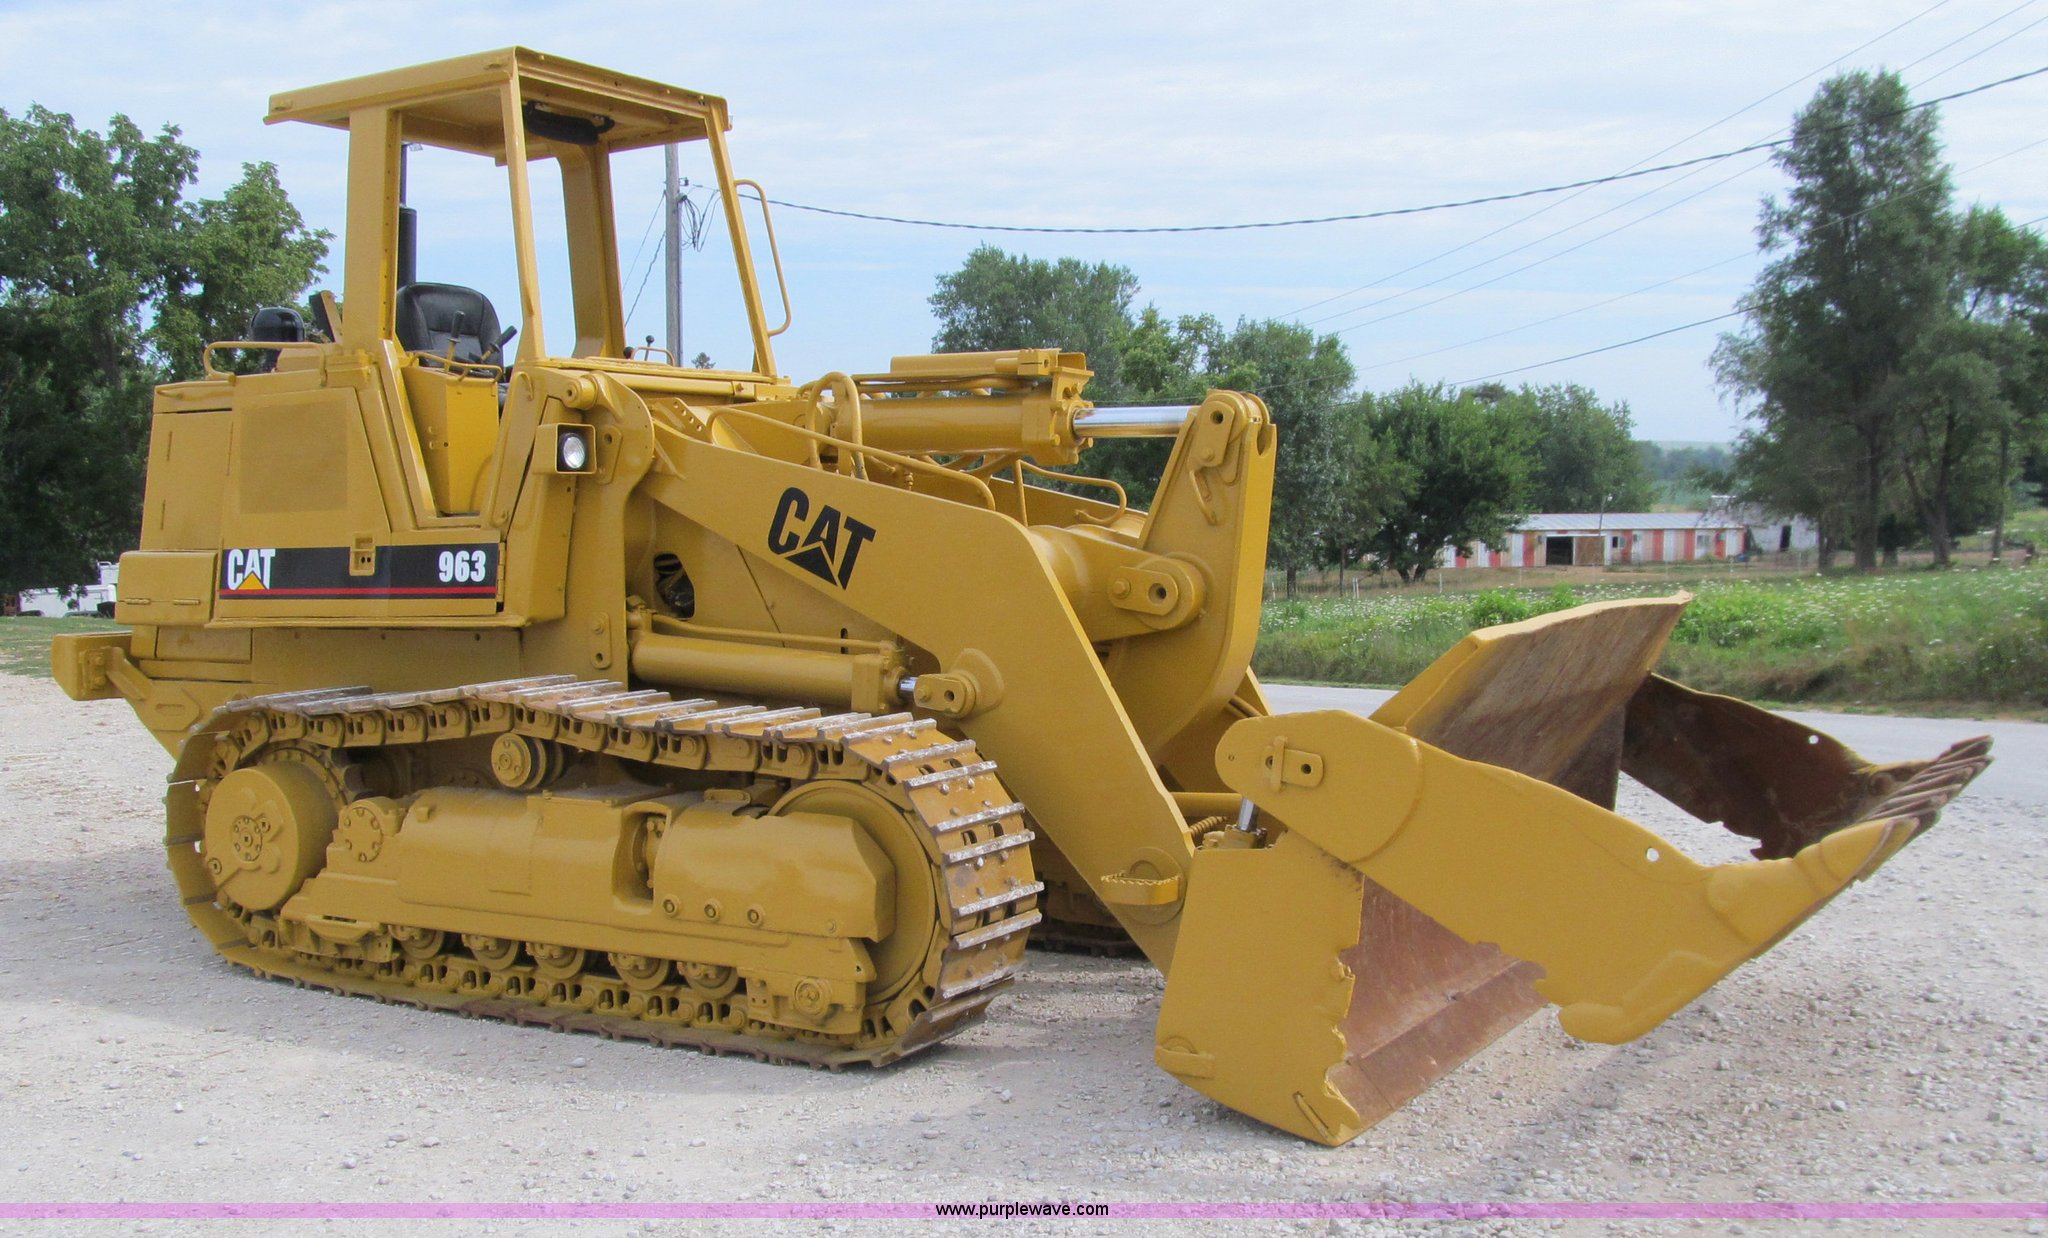 1987 Caterpillar 963 track loader | Item A8431 | SOLD! Thurs